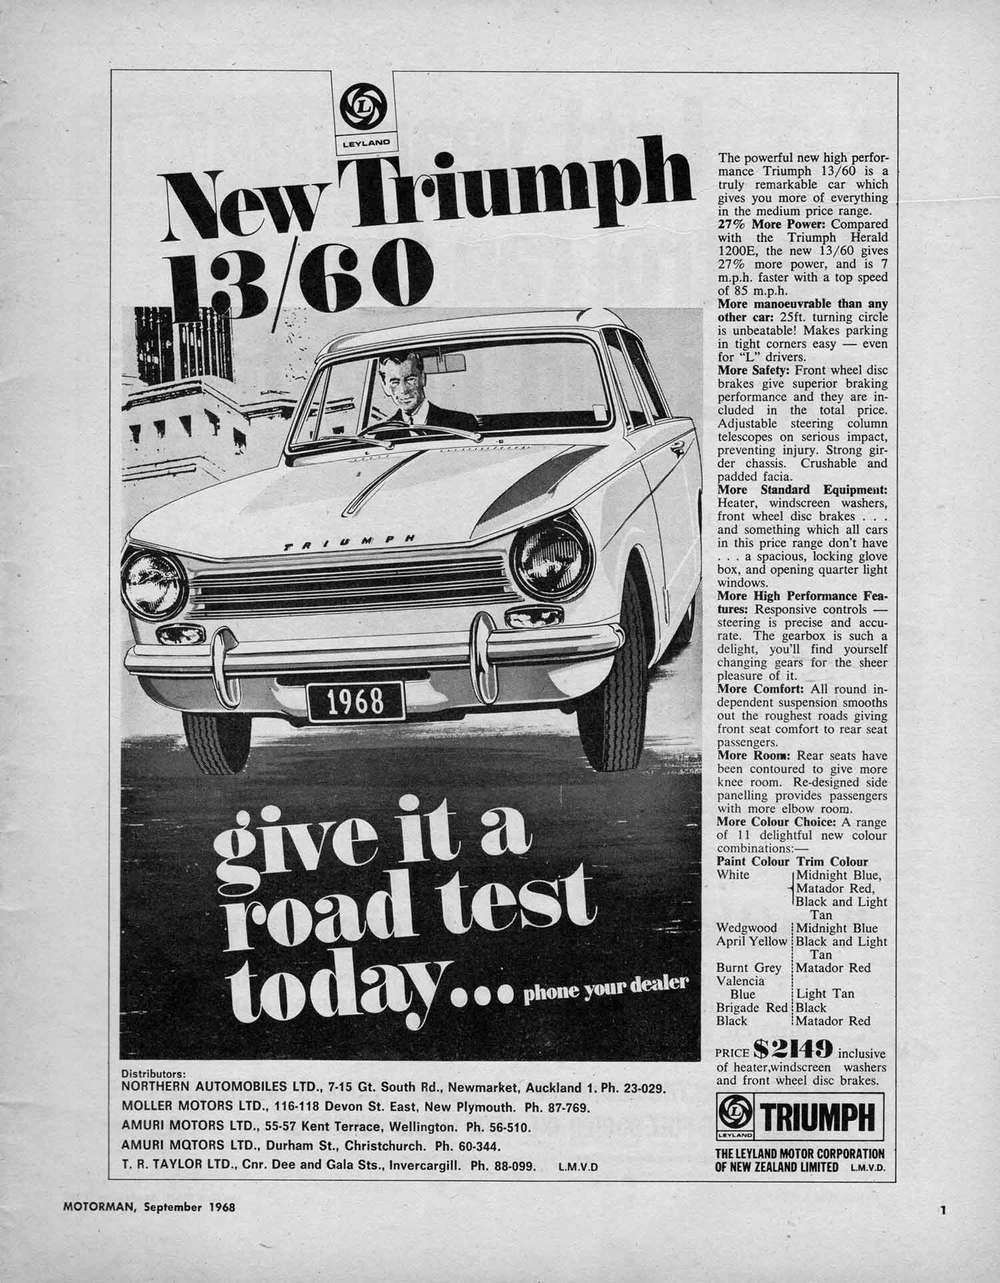 British Leyland Motor Corporation advert that appeared in the September 1968 edition of Motorman shows how the Herald's styling changed over an eight-year period